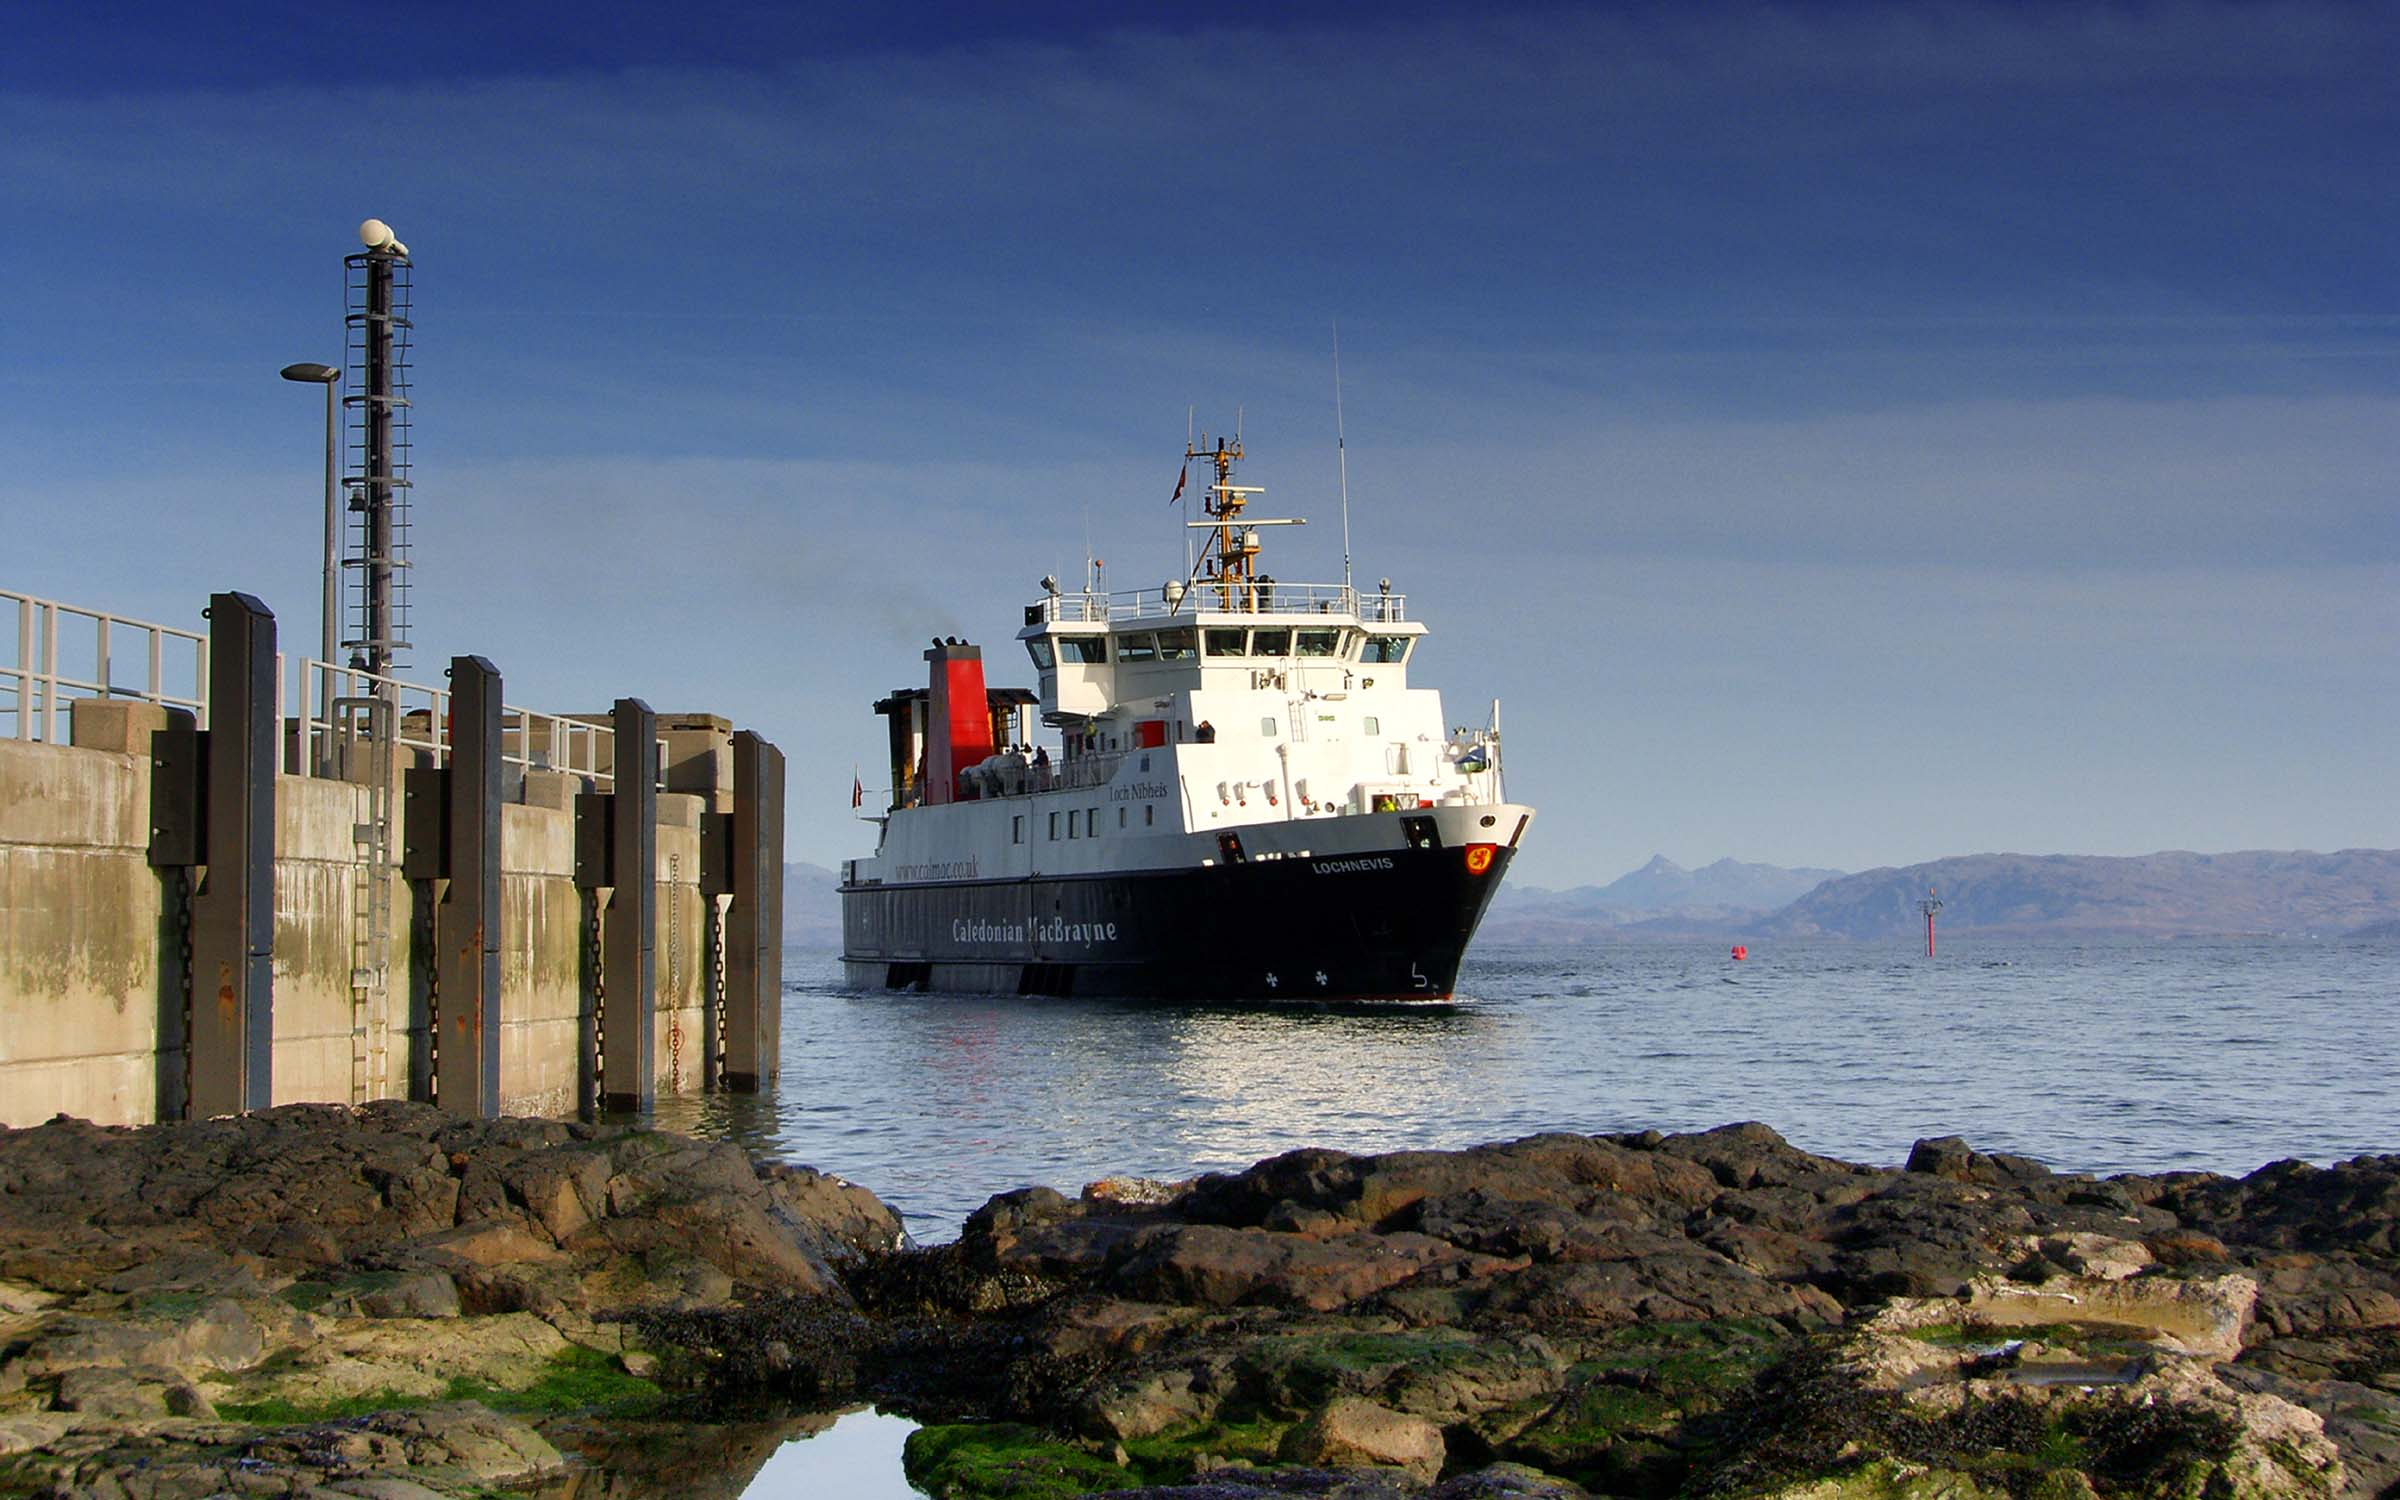 Lochnevis arriving at Eigg (Ships of CalMac)